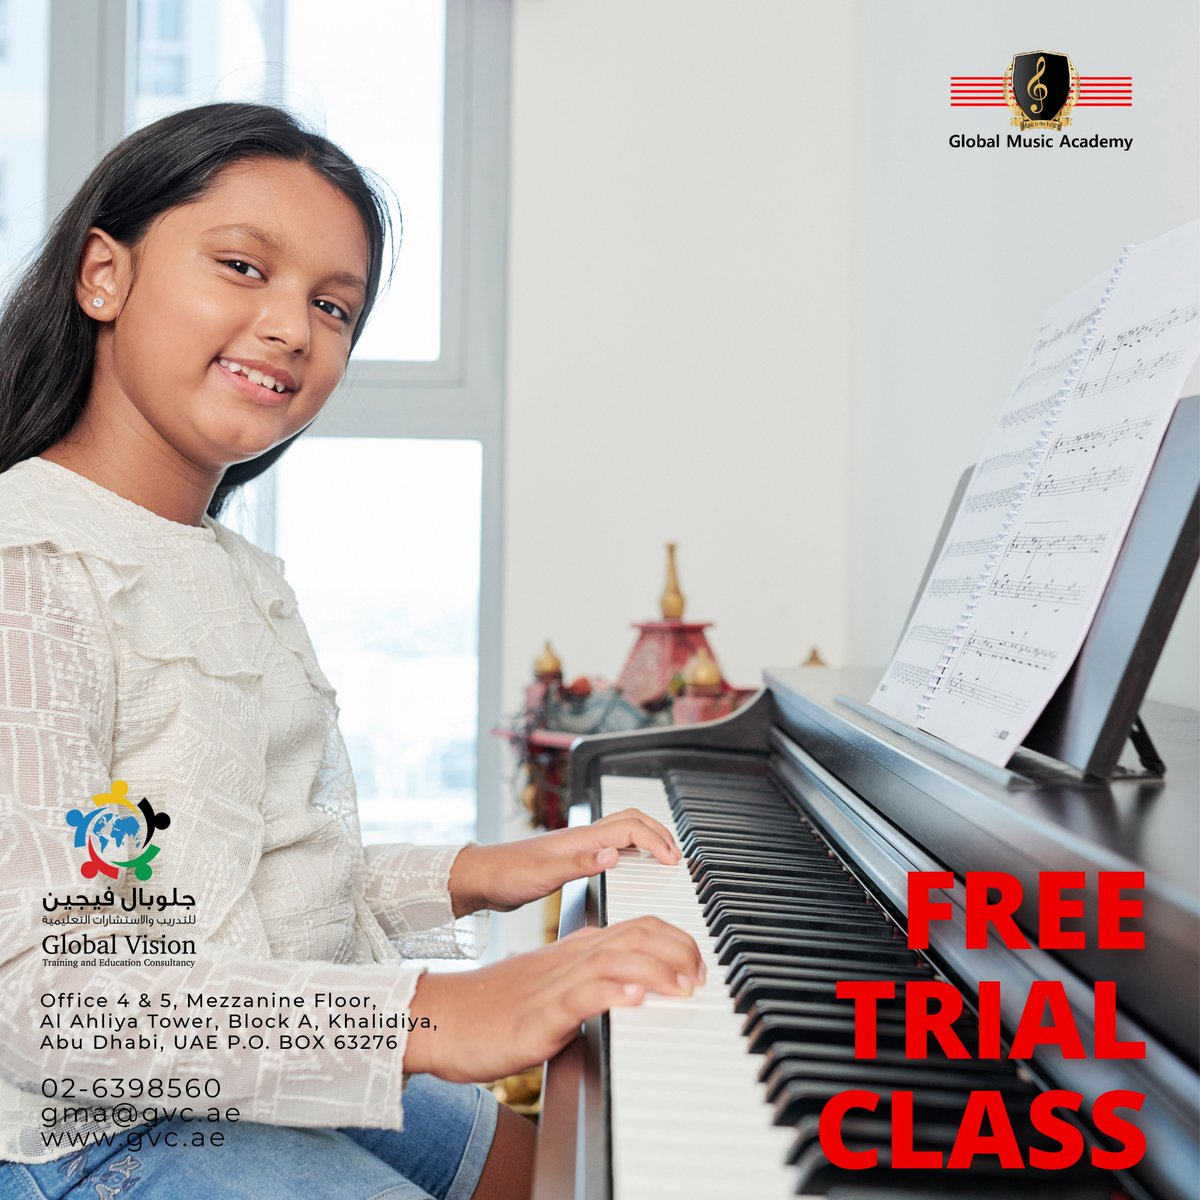 FREE PIANO LESSONS!  Book now and save 100 AED! To learn more about our guitar lessons and other music courses, call 02-6398560 or on WhatsApp at 0509906551.🎼🎹🌟  #globalmusicacademyae #pianolessons #pianoforbeginners #UAE #AbuDhabi #musiclovers #piano #freeclasses #CommitToWin https://t.co/bBbBYSt1AD